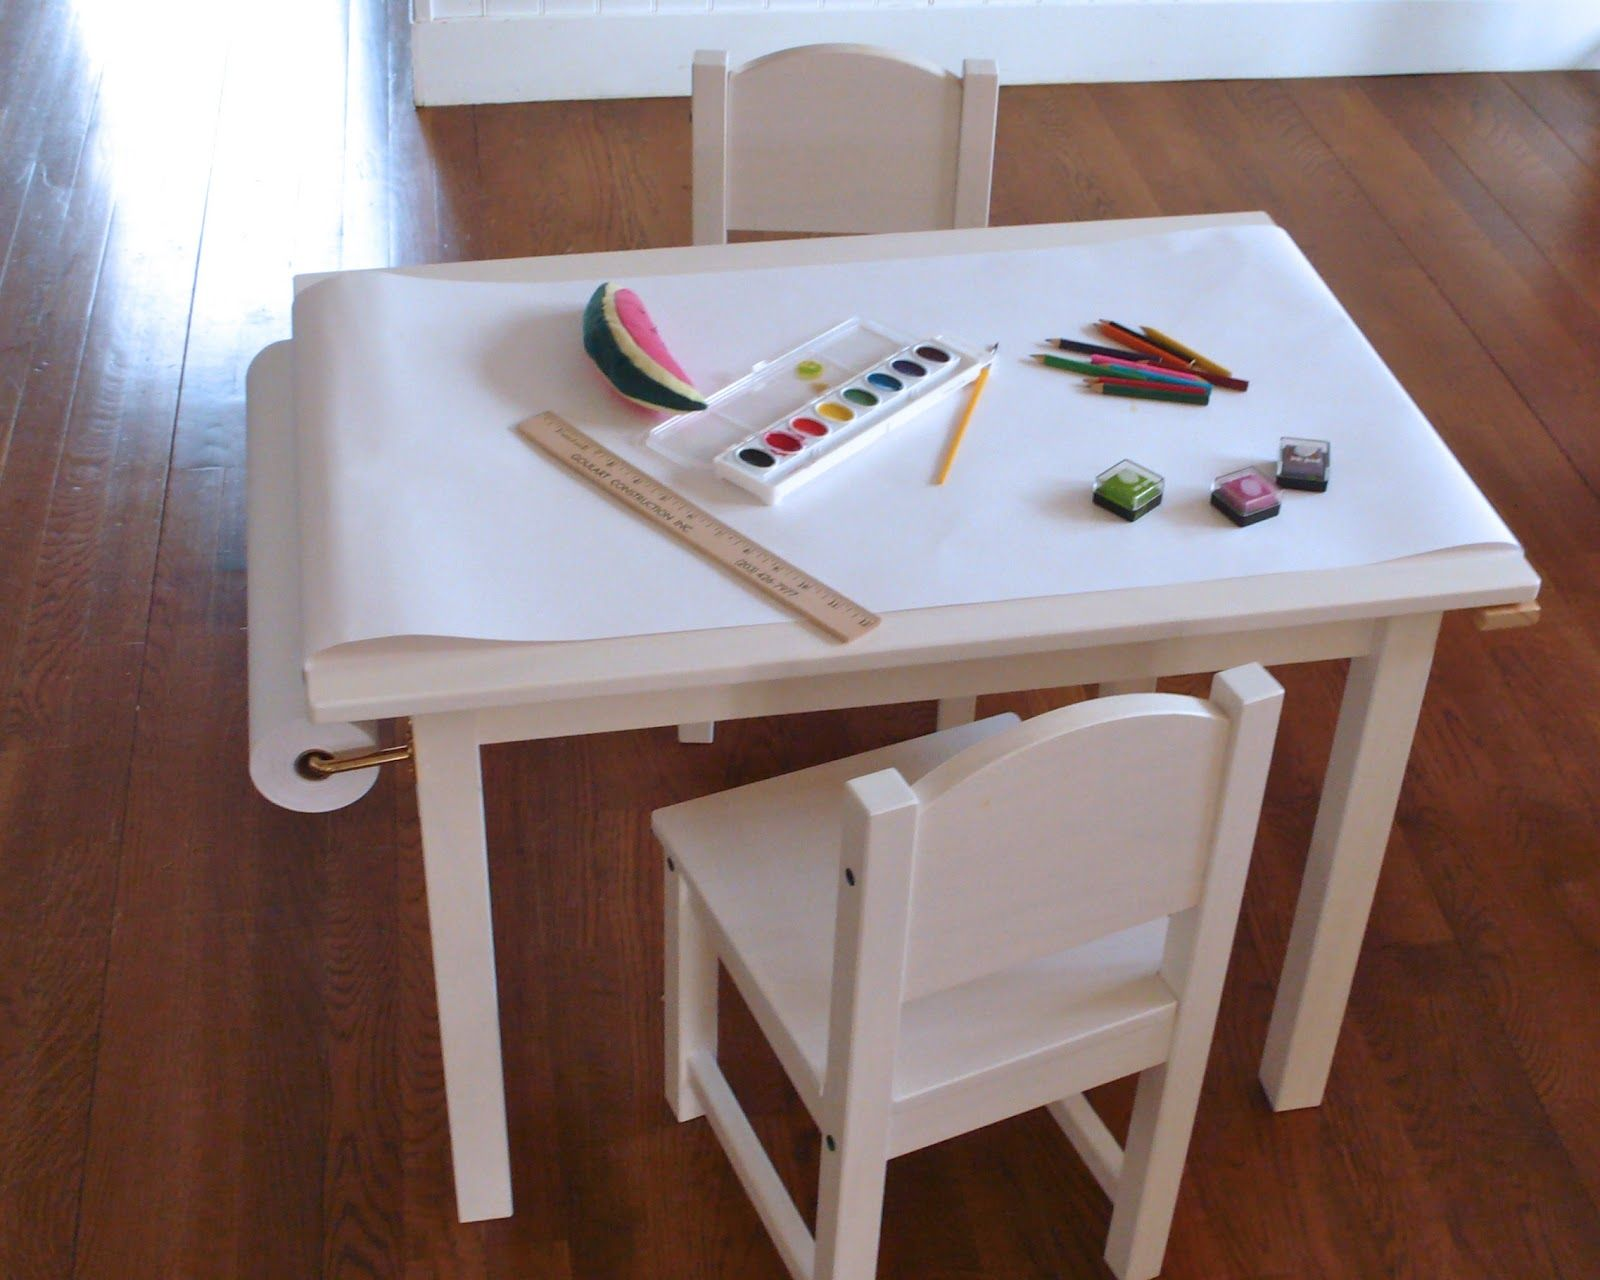 Diy Kiddo Art Table By Seaurchinstudio Made With An Ikea Gulliver Beka Paper Roll And Gooseneck Brackets Make Cuter But I Like The Idea Of